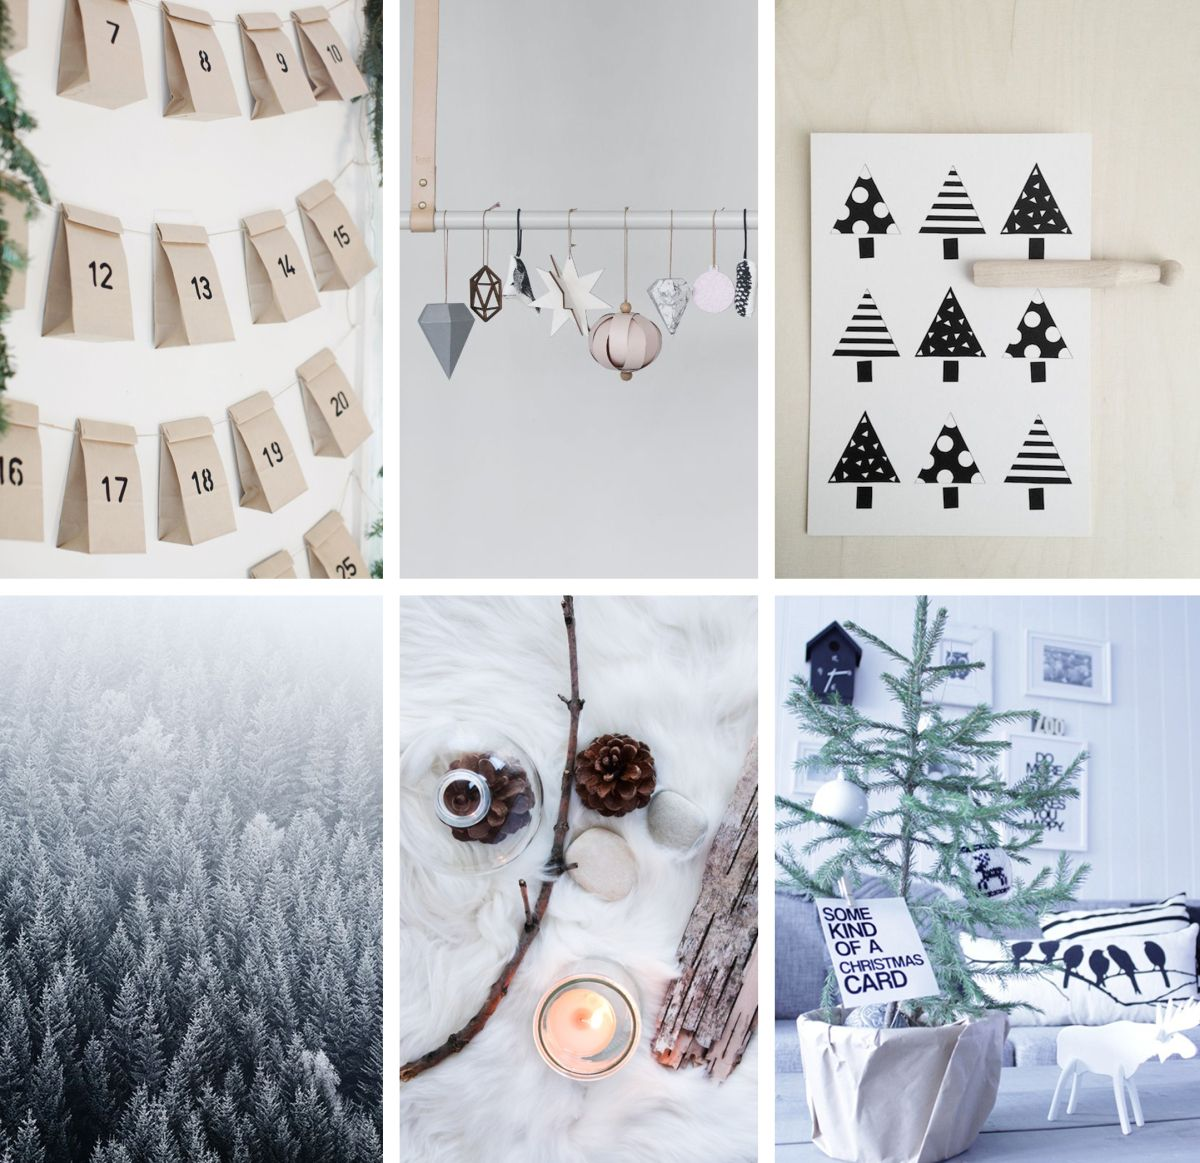 Pin by Ingrid Ødegaard on Christmas   Pinterest   Lighted trees and ...